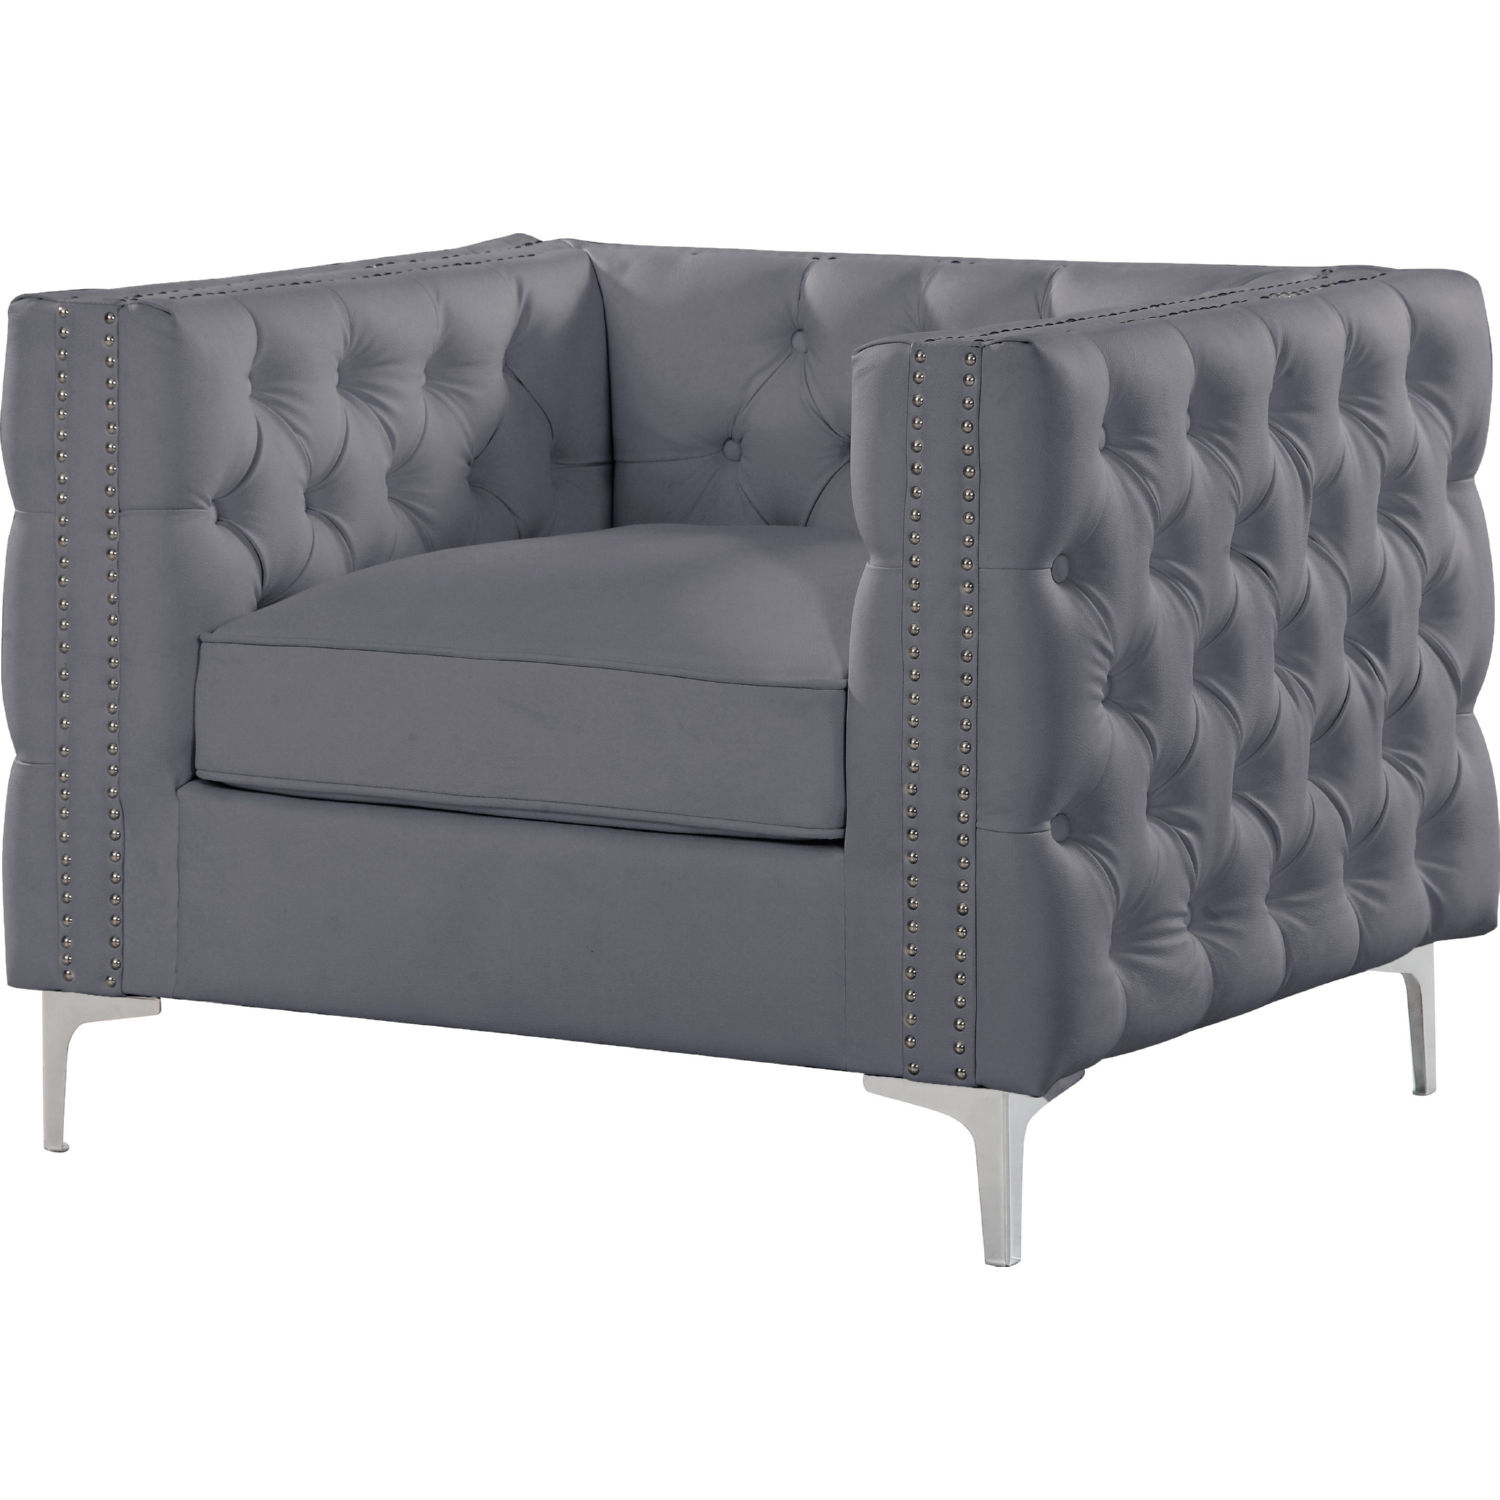 Tremendous Da Vinci Club Chair In Tufted Grey Leatherette W Nailhead Trim On Metal Leg By Chic Home Pabps2019 Chair Design Images Pabps2019Com